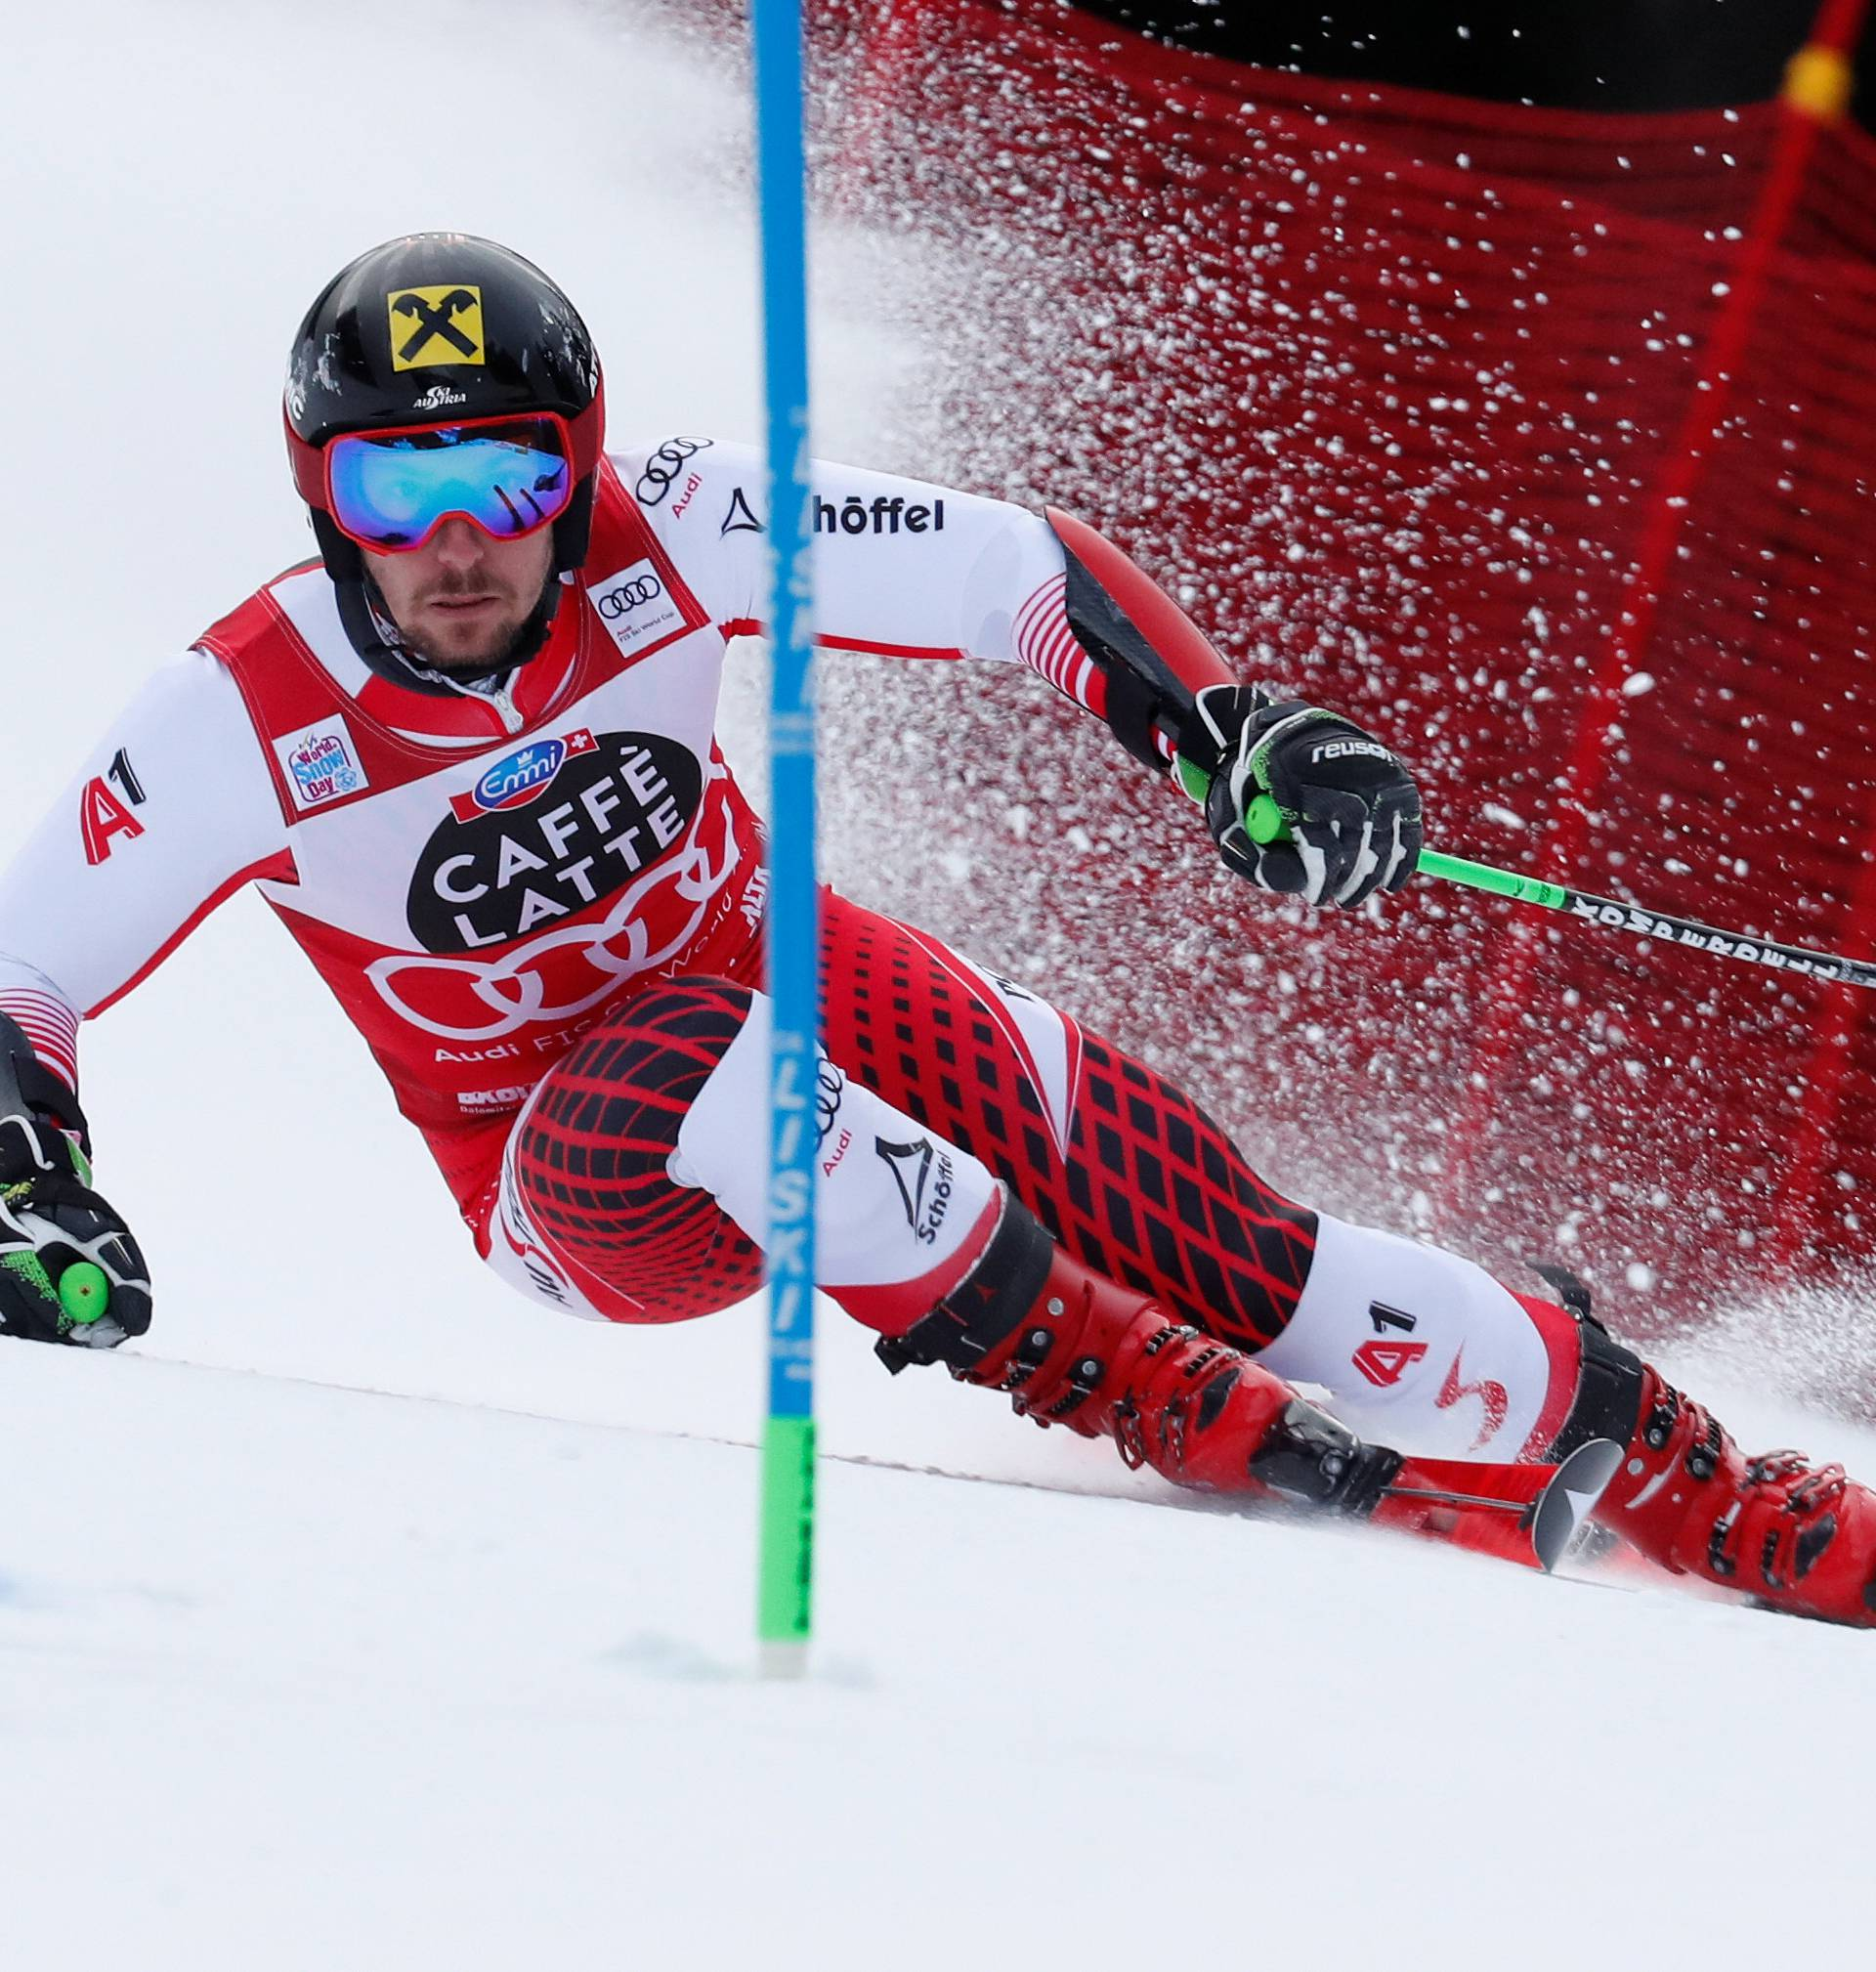 Alpine Skiing World Cup - Men's Giant Slalom